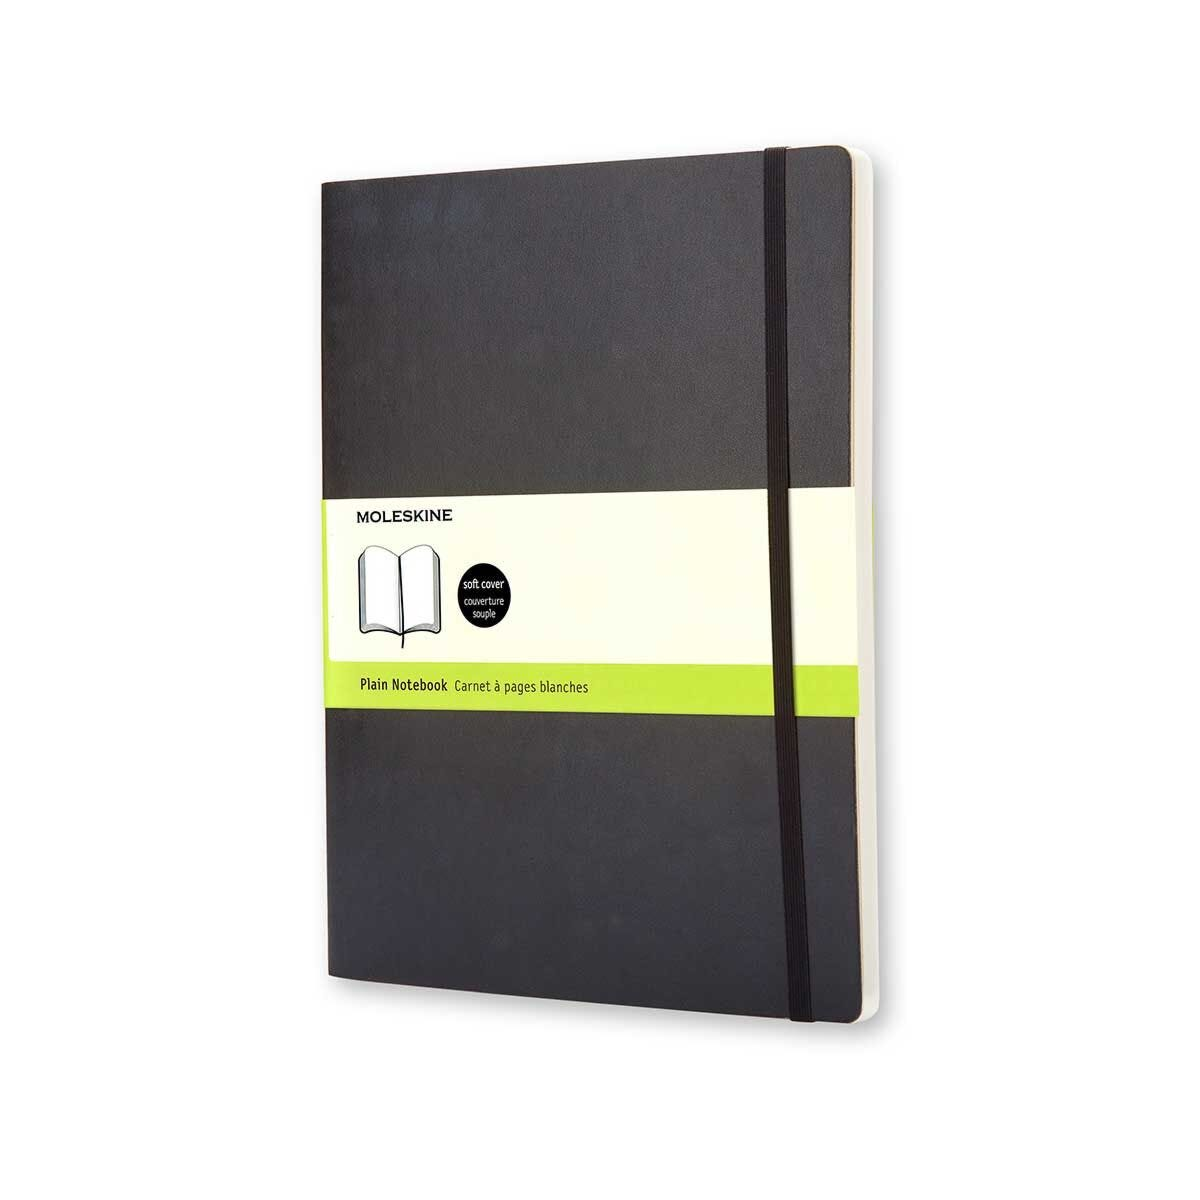 Moleskine Soft Cover Plain Notebook Extra Large 192 Pages 96 Sheets